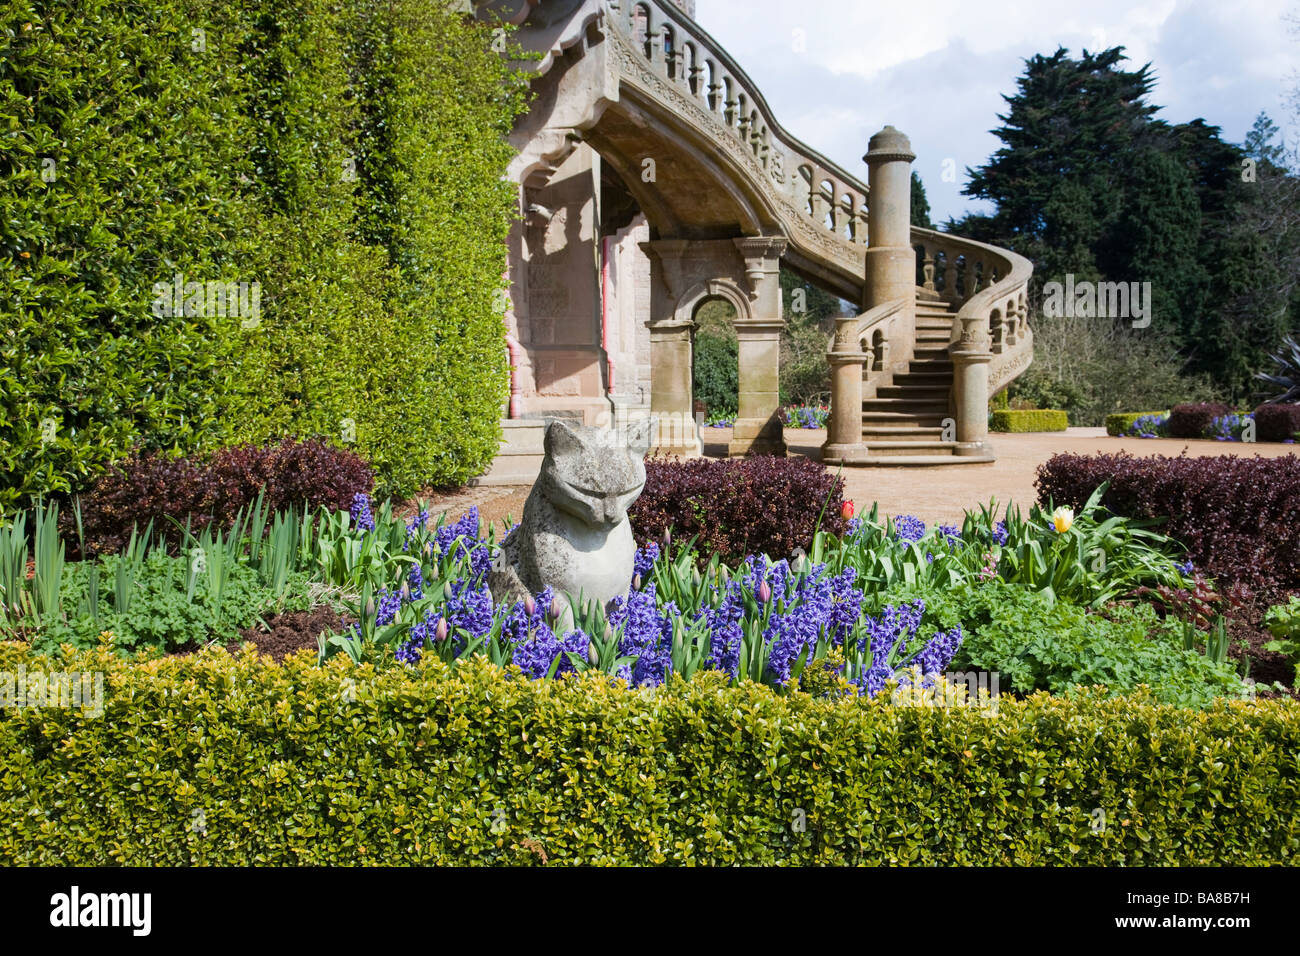 Cat Garden at Belfast Castle Stock Photo Royalty Free Image